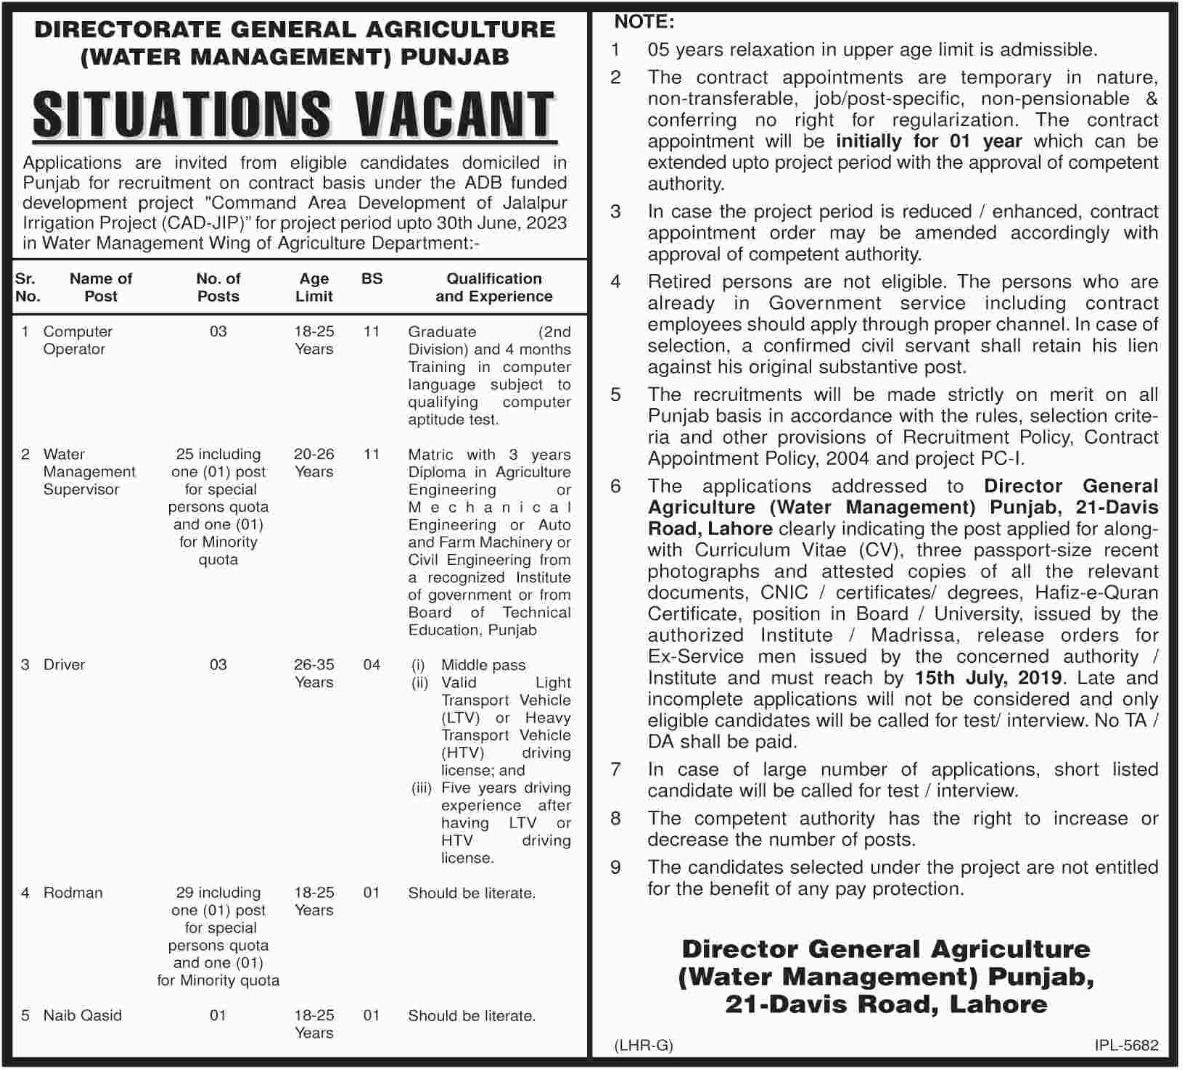 agriculture department jobs 2019,agriculture department,agriculture department jobs 2018,govt jobs,agriculture,agriculture department punjab jobs 2019,agriculture department latest jobs 2019,govt jobs agriculture department punjab jobs 2019,agriculture jobs,ppsc jobs 2019 in agriculture department,agriculture department jobs,jos in agriculture department 2019,agriculture job,agriculture department latest jobs